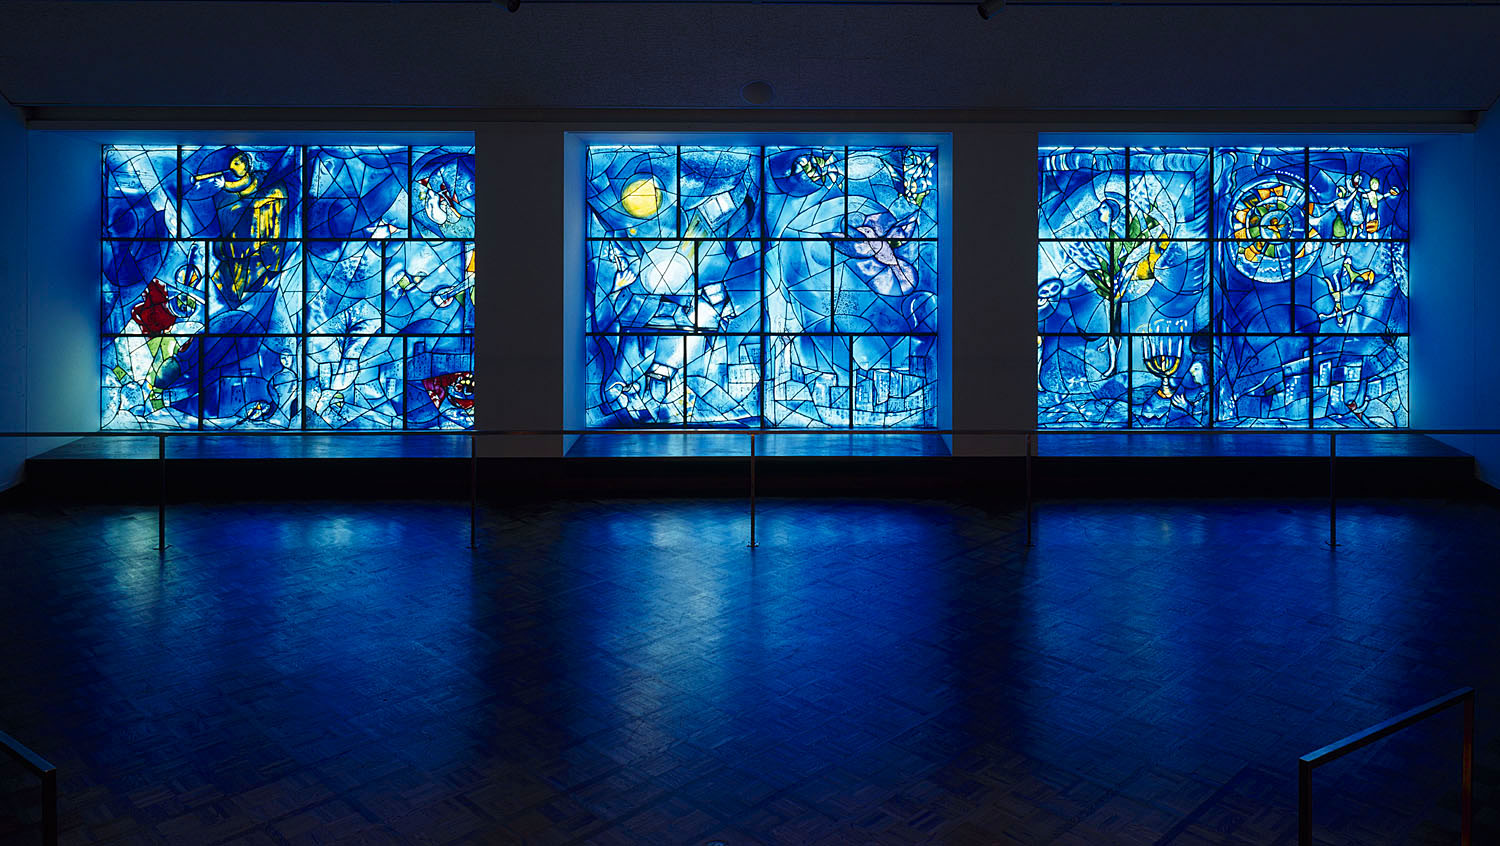 Marc Chagall Stained Glass Windows at Chicago Art Institute